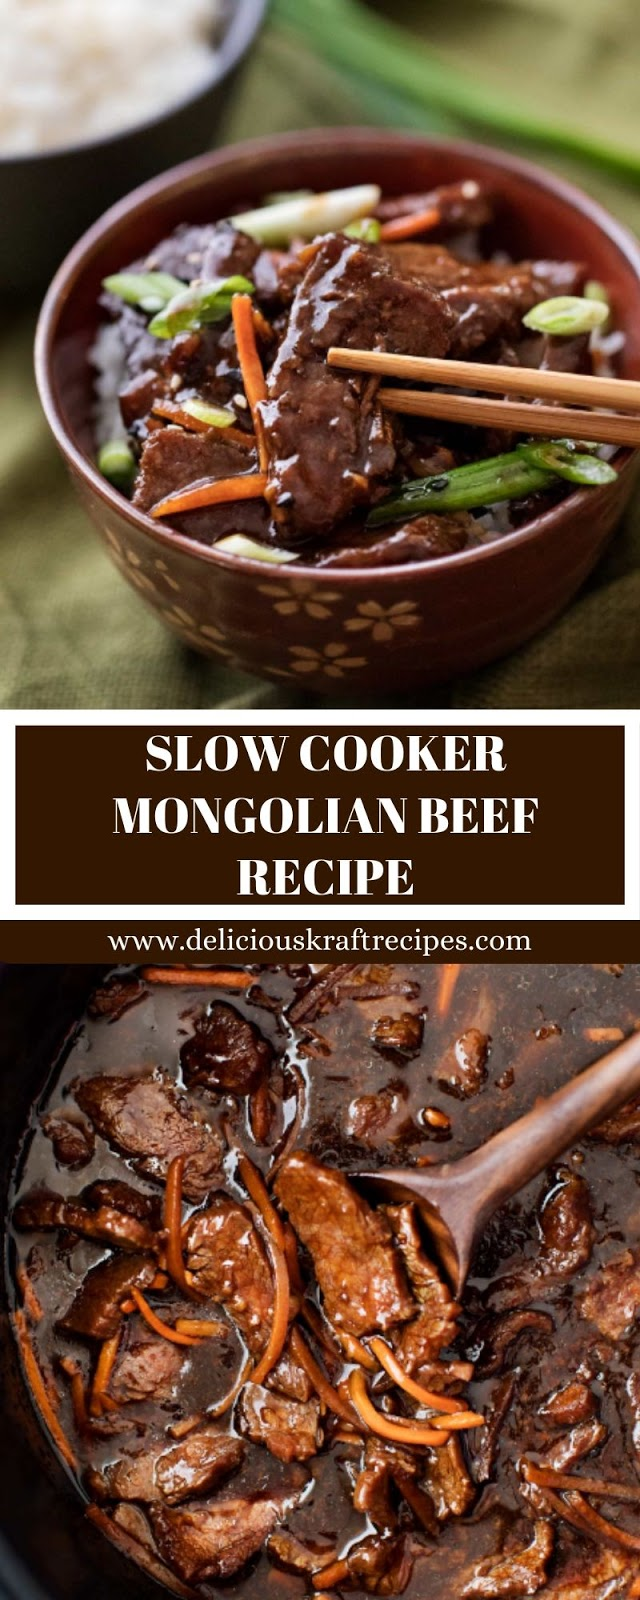 SLOW COOKER MONGOLIAN BEEF RECIPE